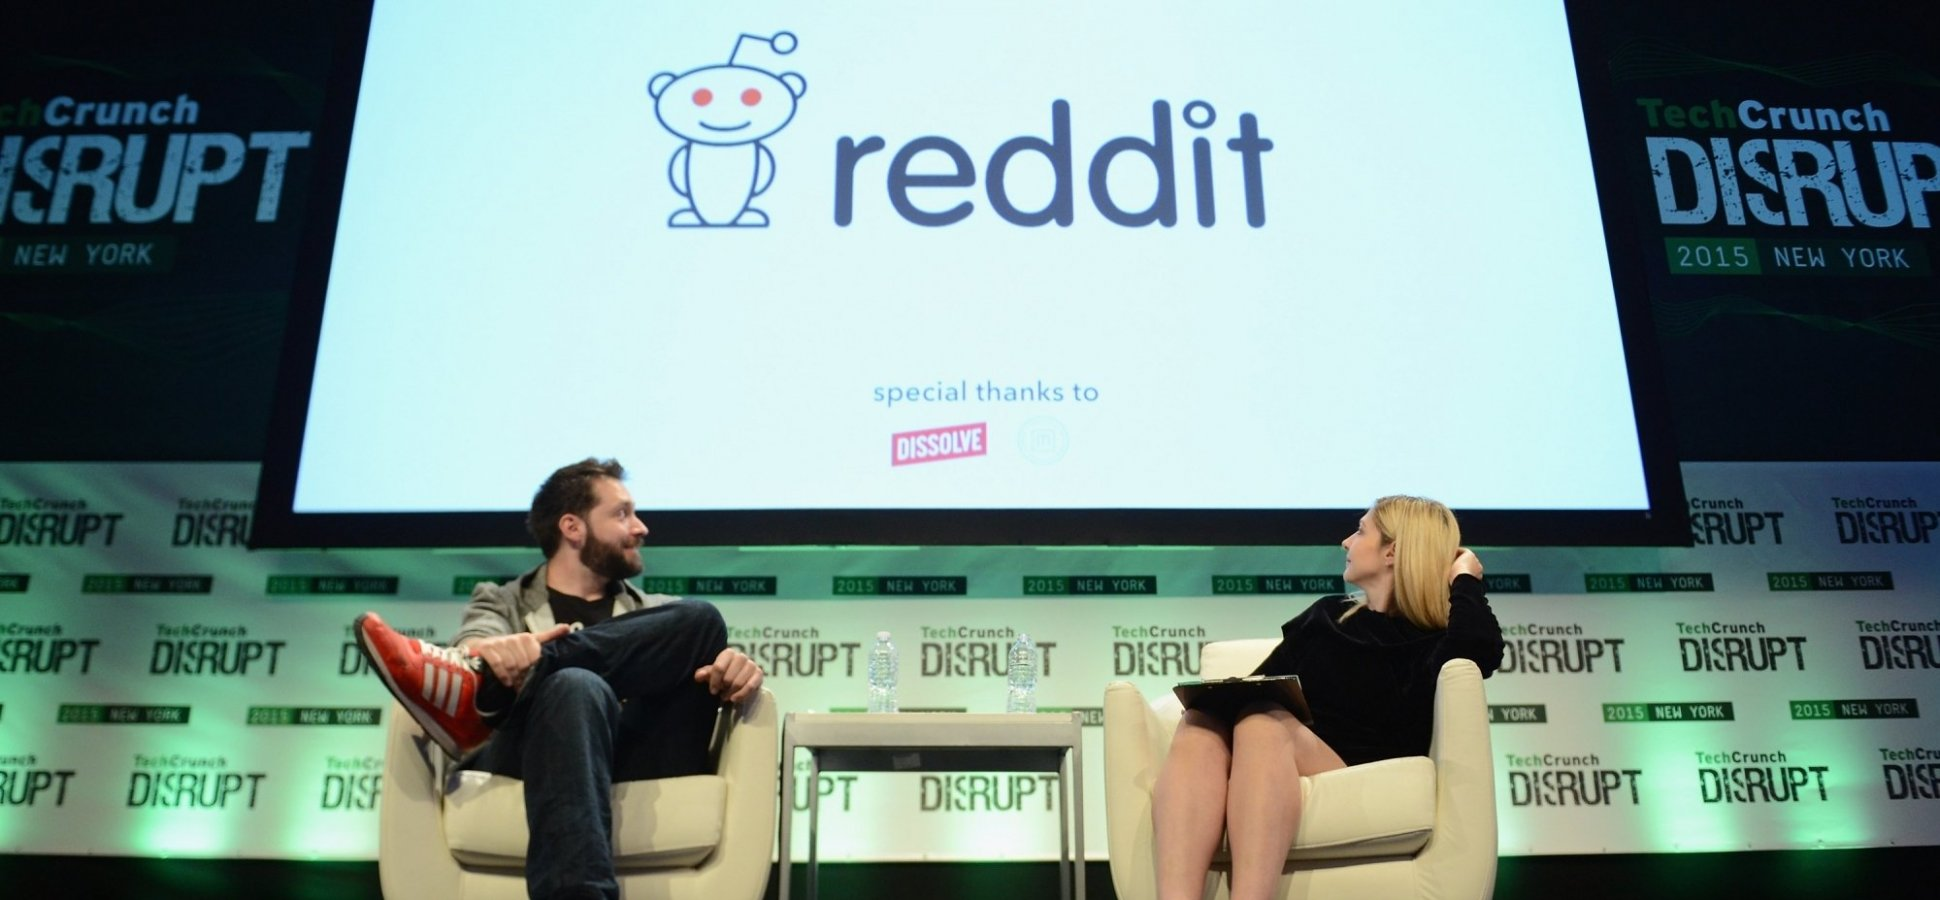 How to Use Reddit to Build Up Your Professional Credibility | Inc com